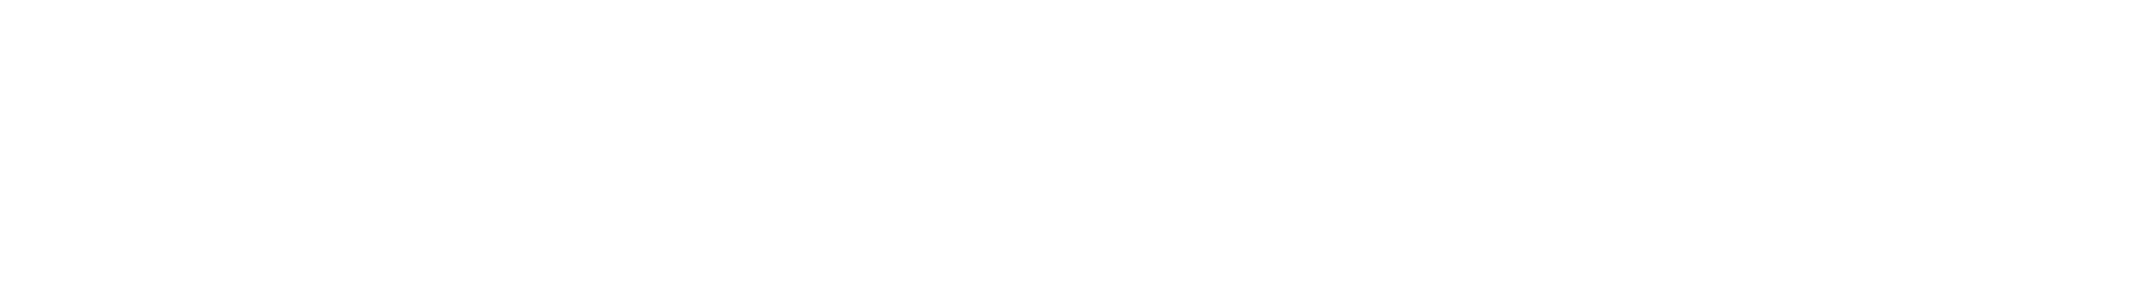 Sources for Human Services